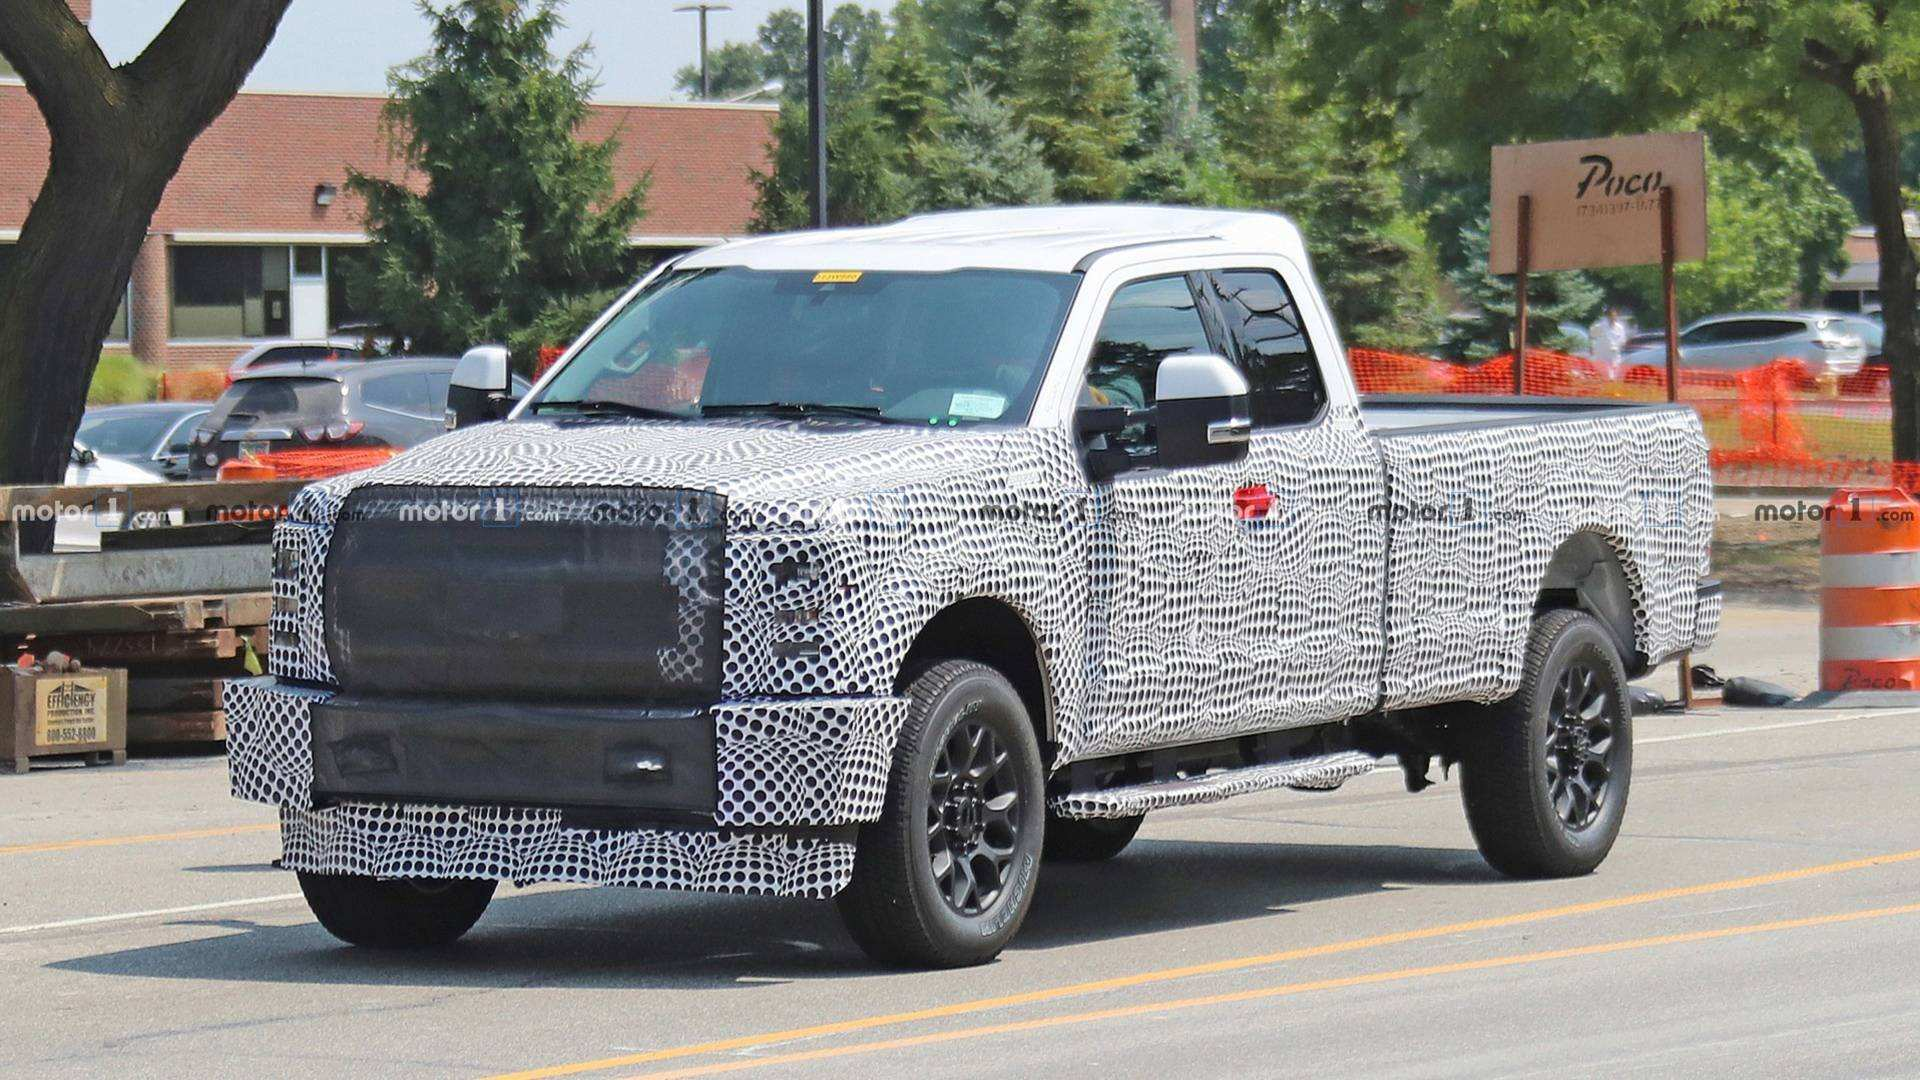 78 Great 2020 Ford F350 Diesel Prices for 2020 Ford F350 Diesel